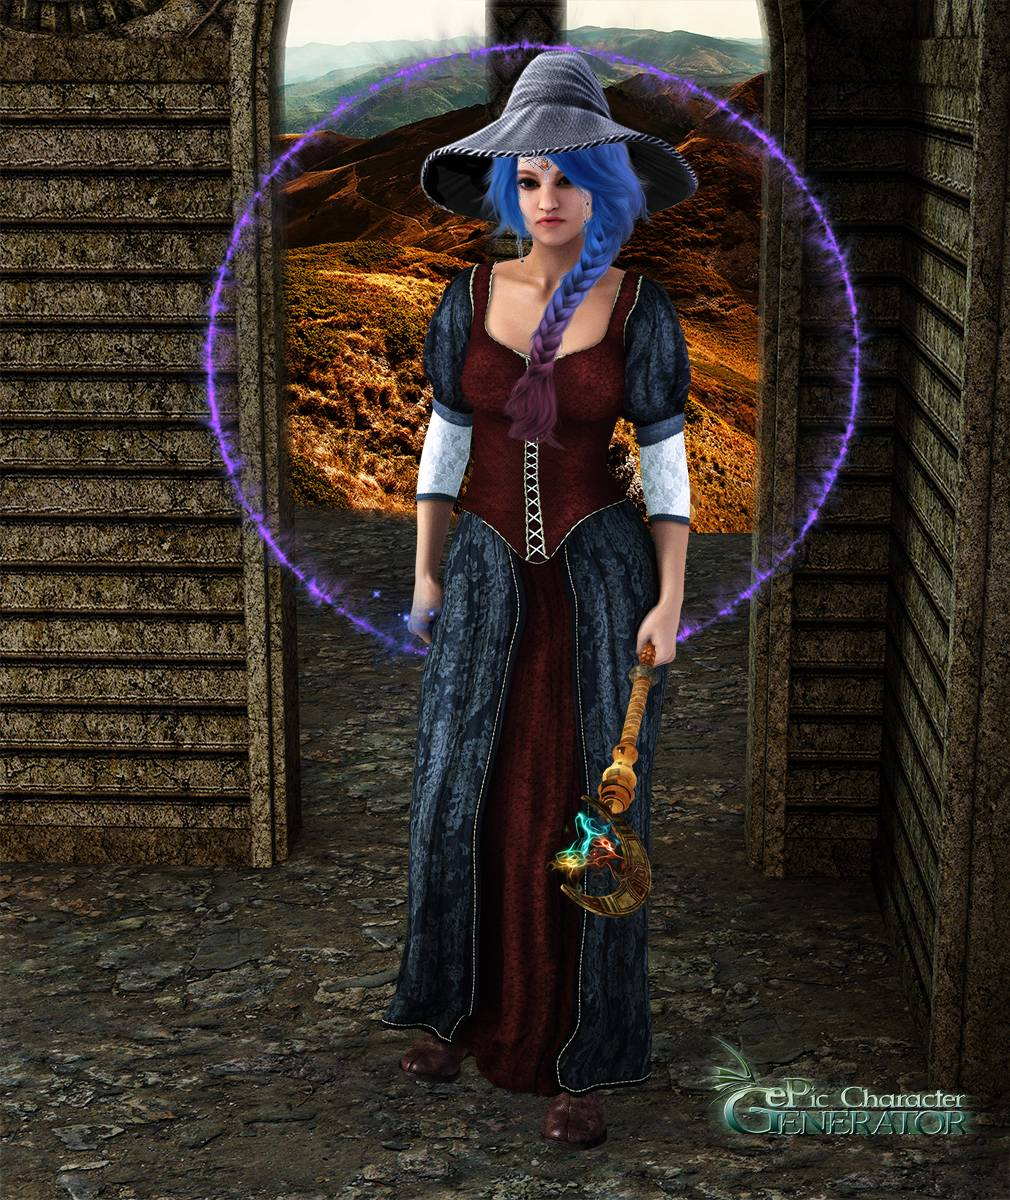 ePic Character Generator Season 2 Female Sorcerer Screenshot 09